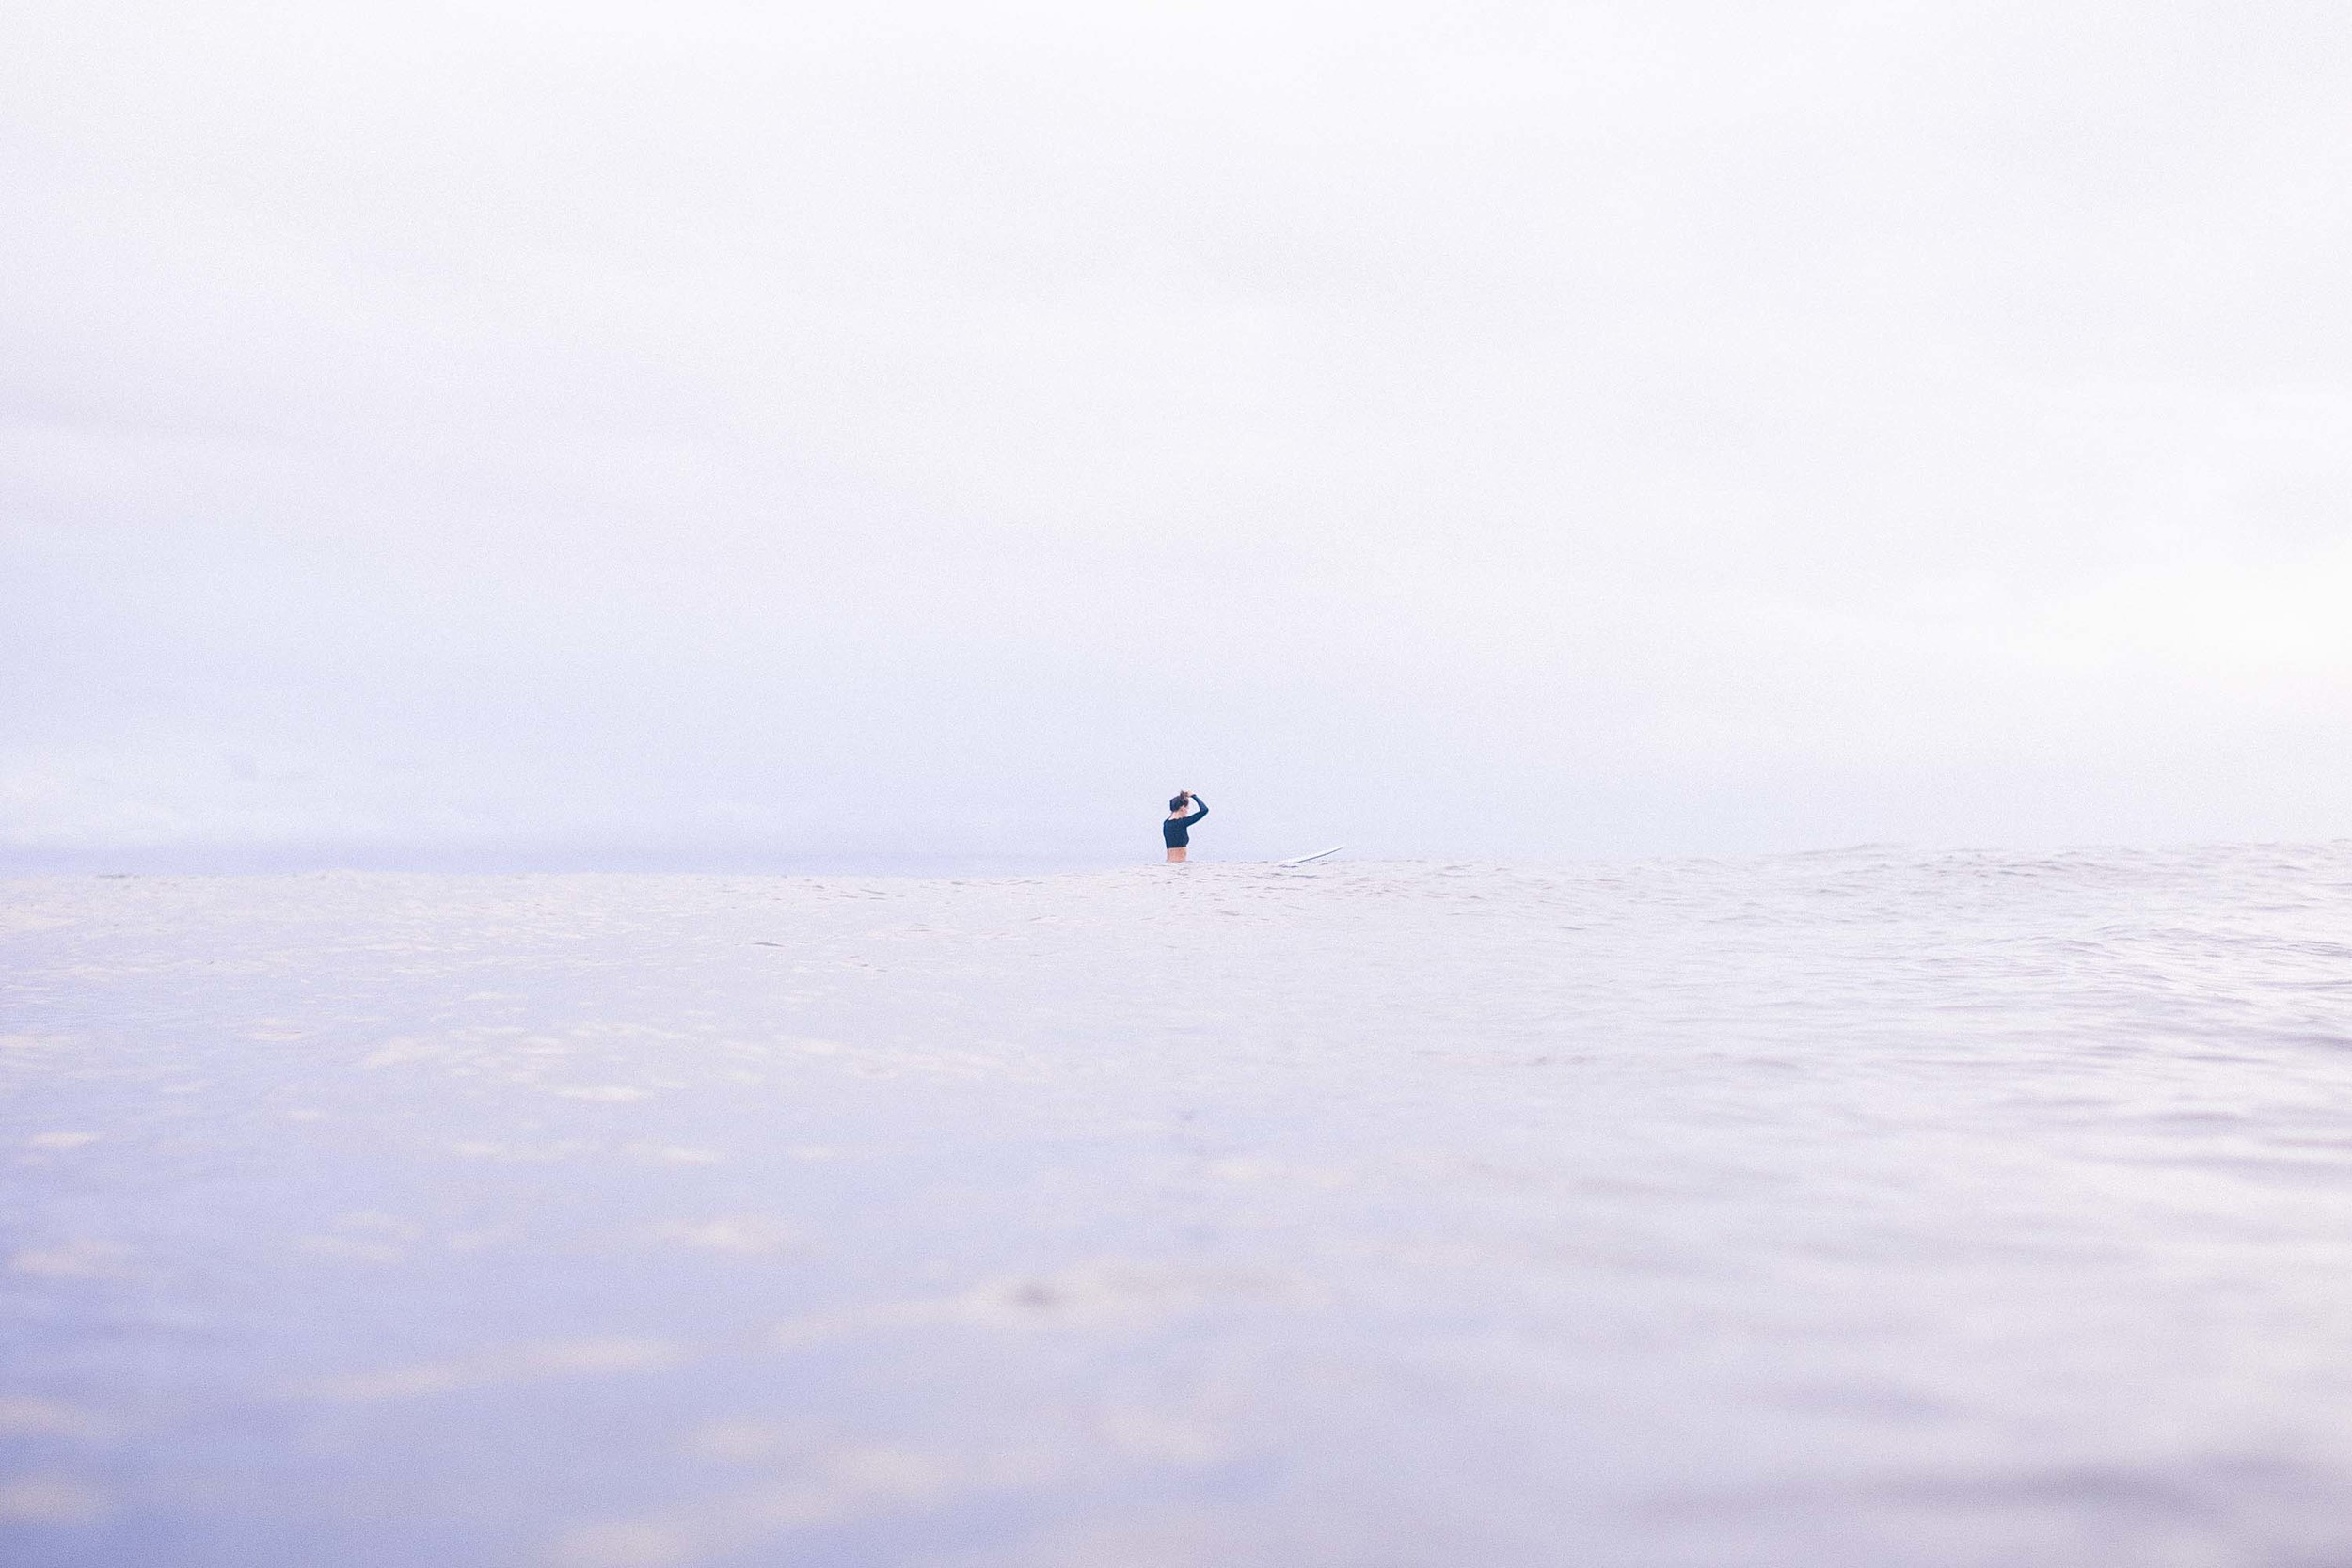 seea bryce johnson photography, hawaii, kauai, surfing, water, p